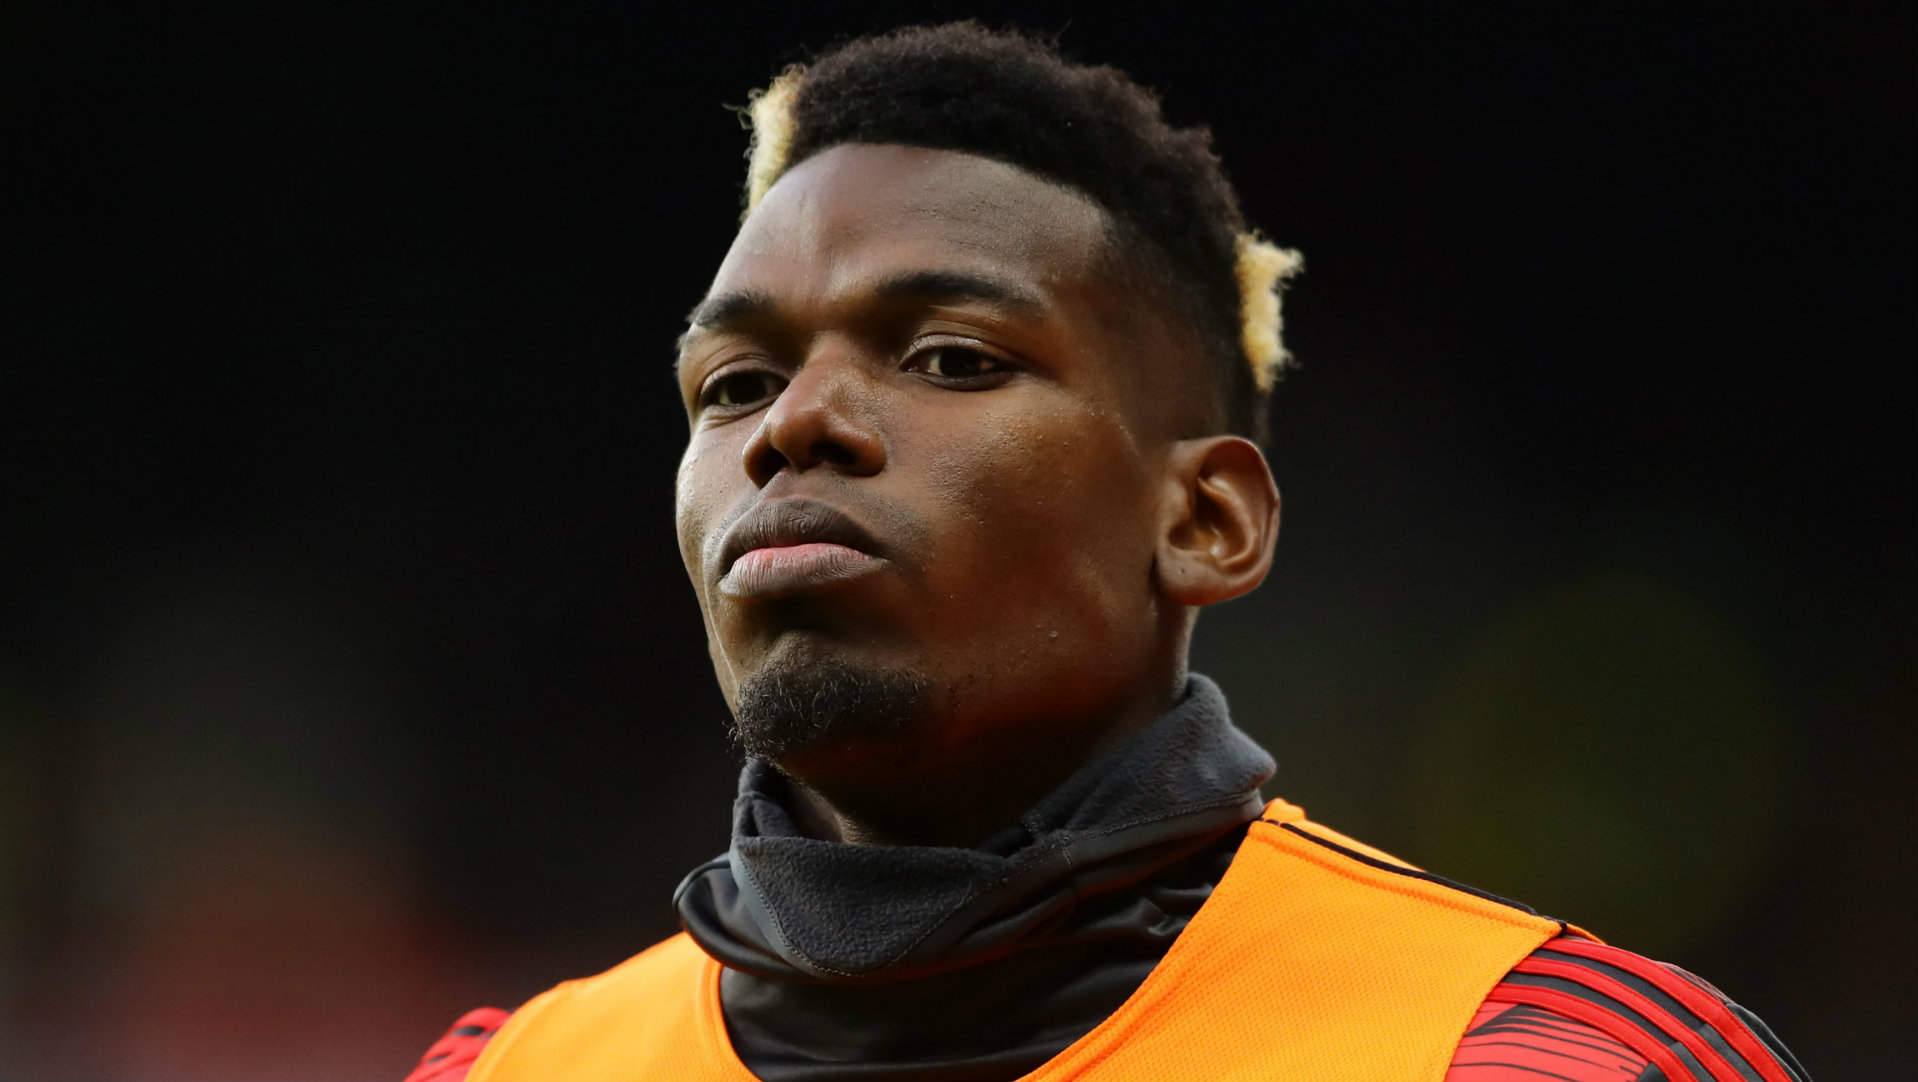 'Pogba will stay at Man Utd' – Schmeichel claims to have inside track from 'the right people'